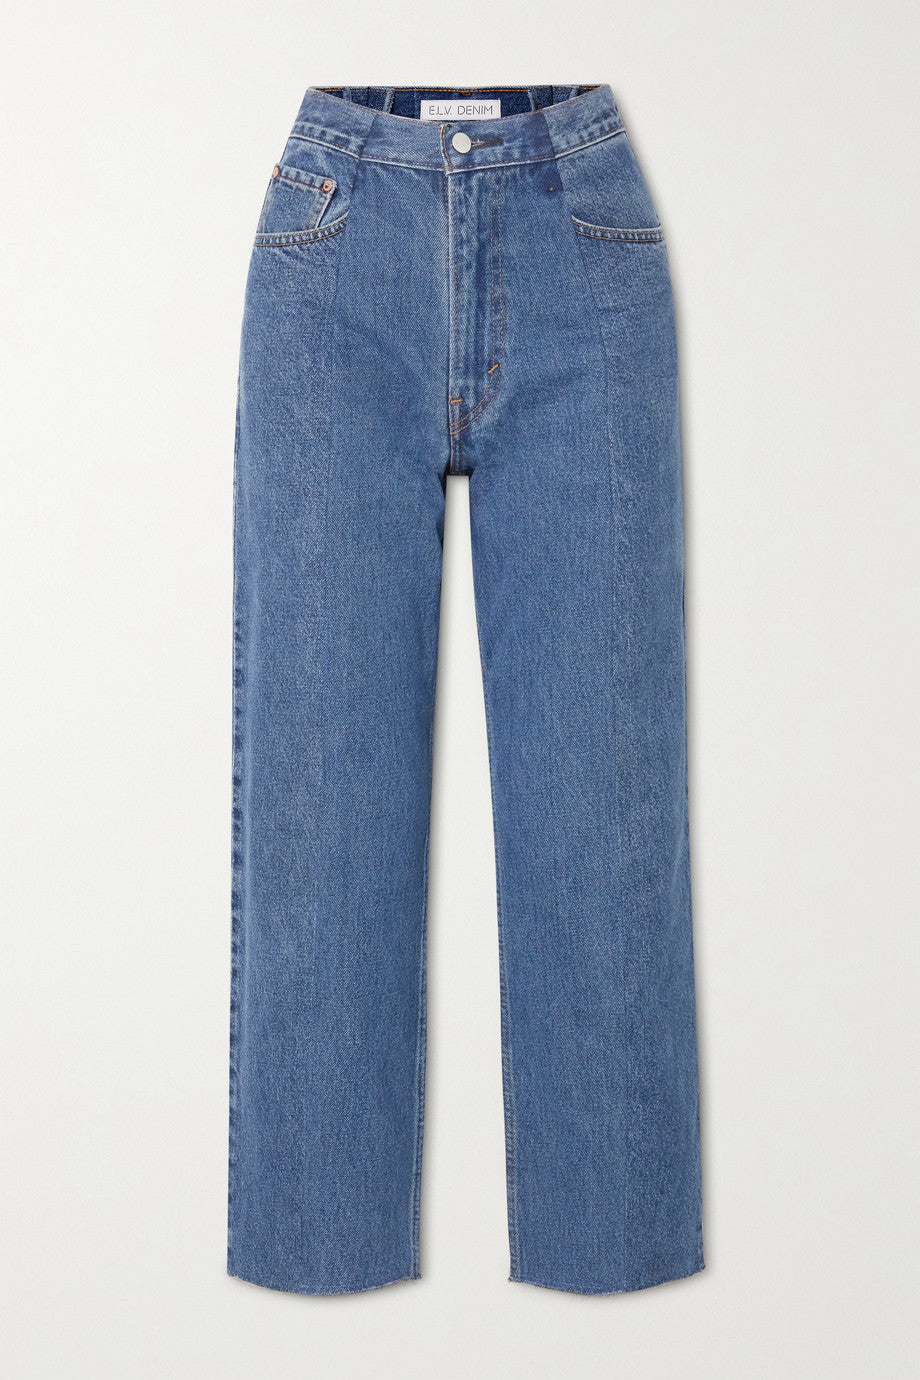 E.L.V. Denim The Boyfriend Frayed High-rise Wide-leg Jeans